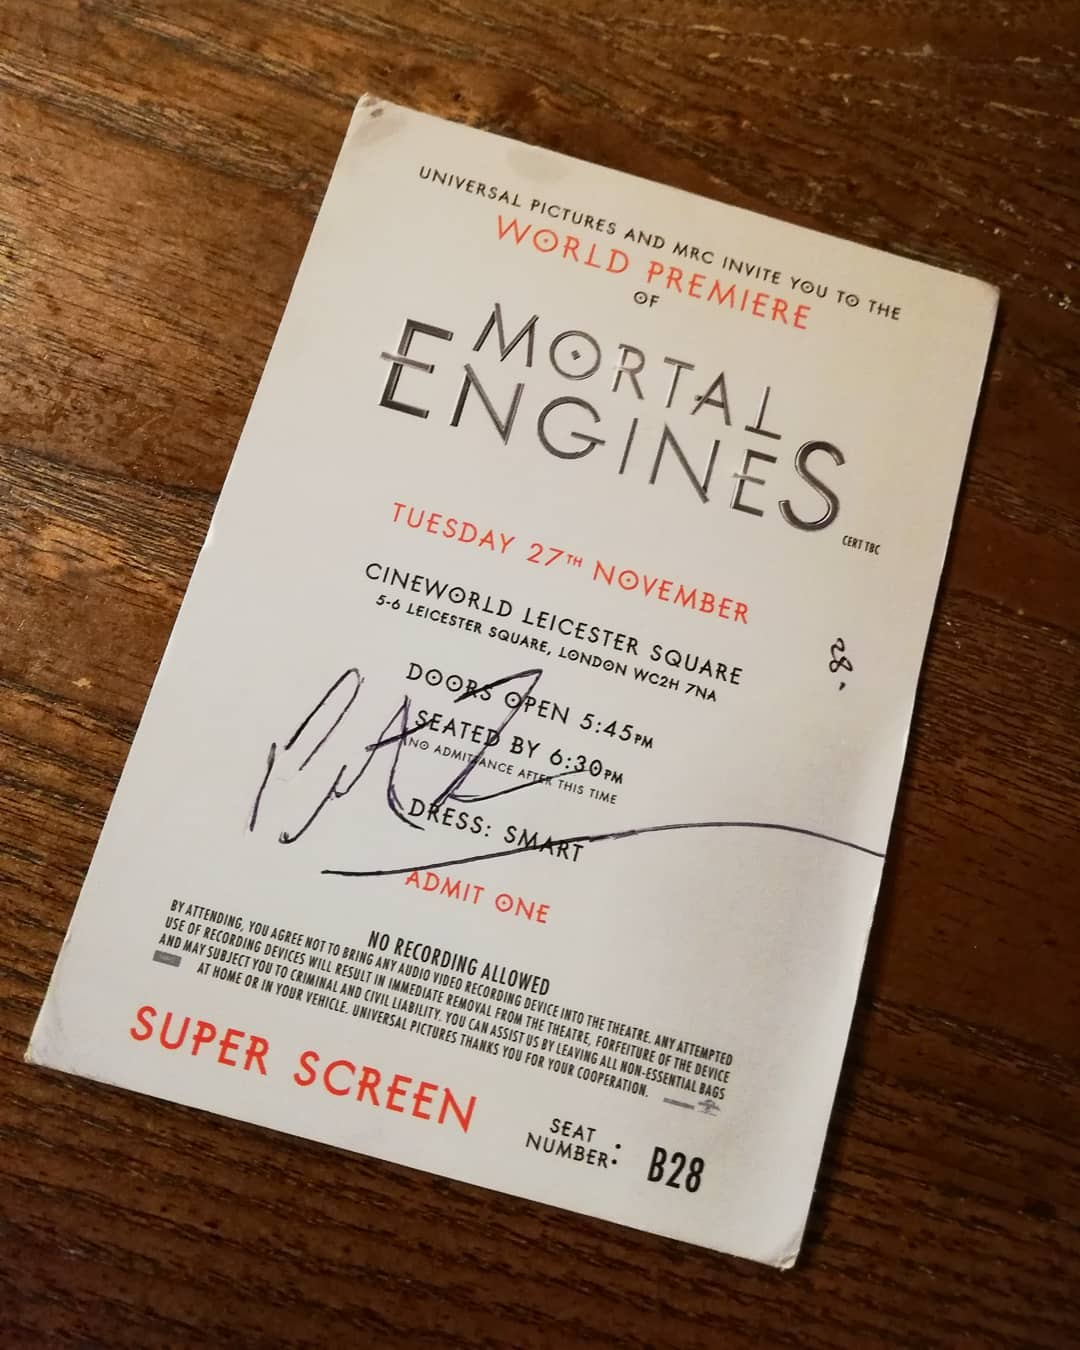 mortal engines ticket signed by peter jackson